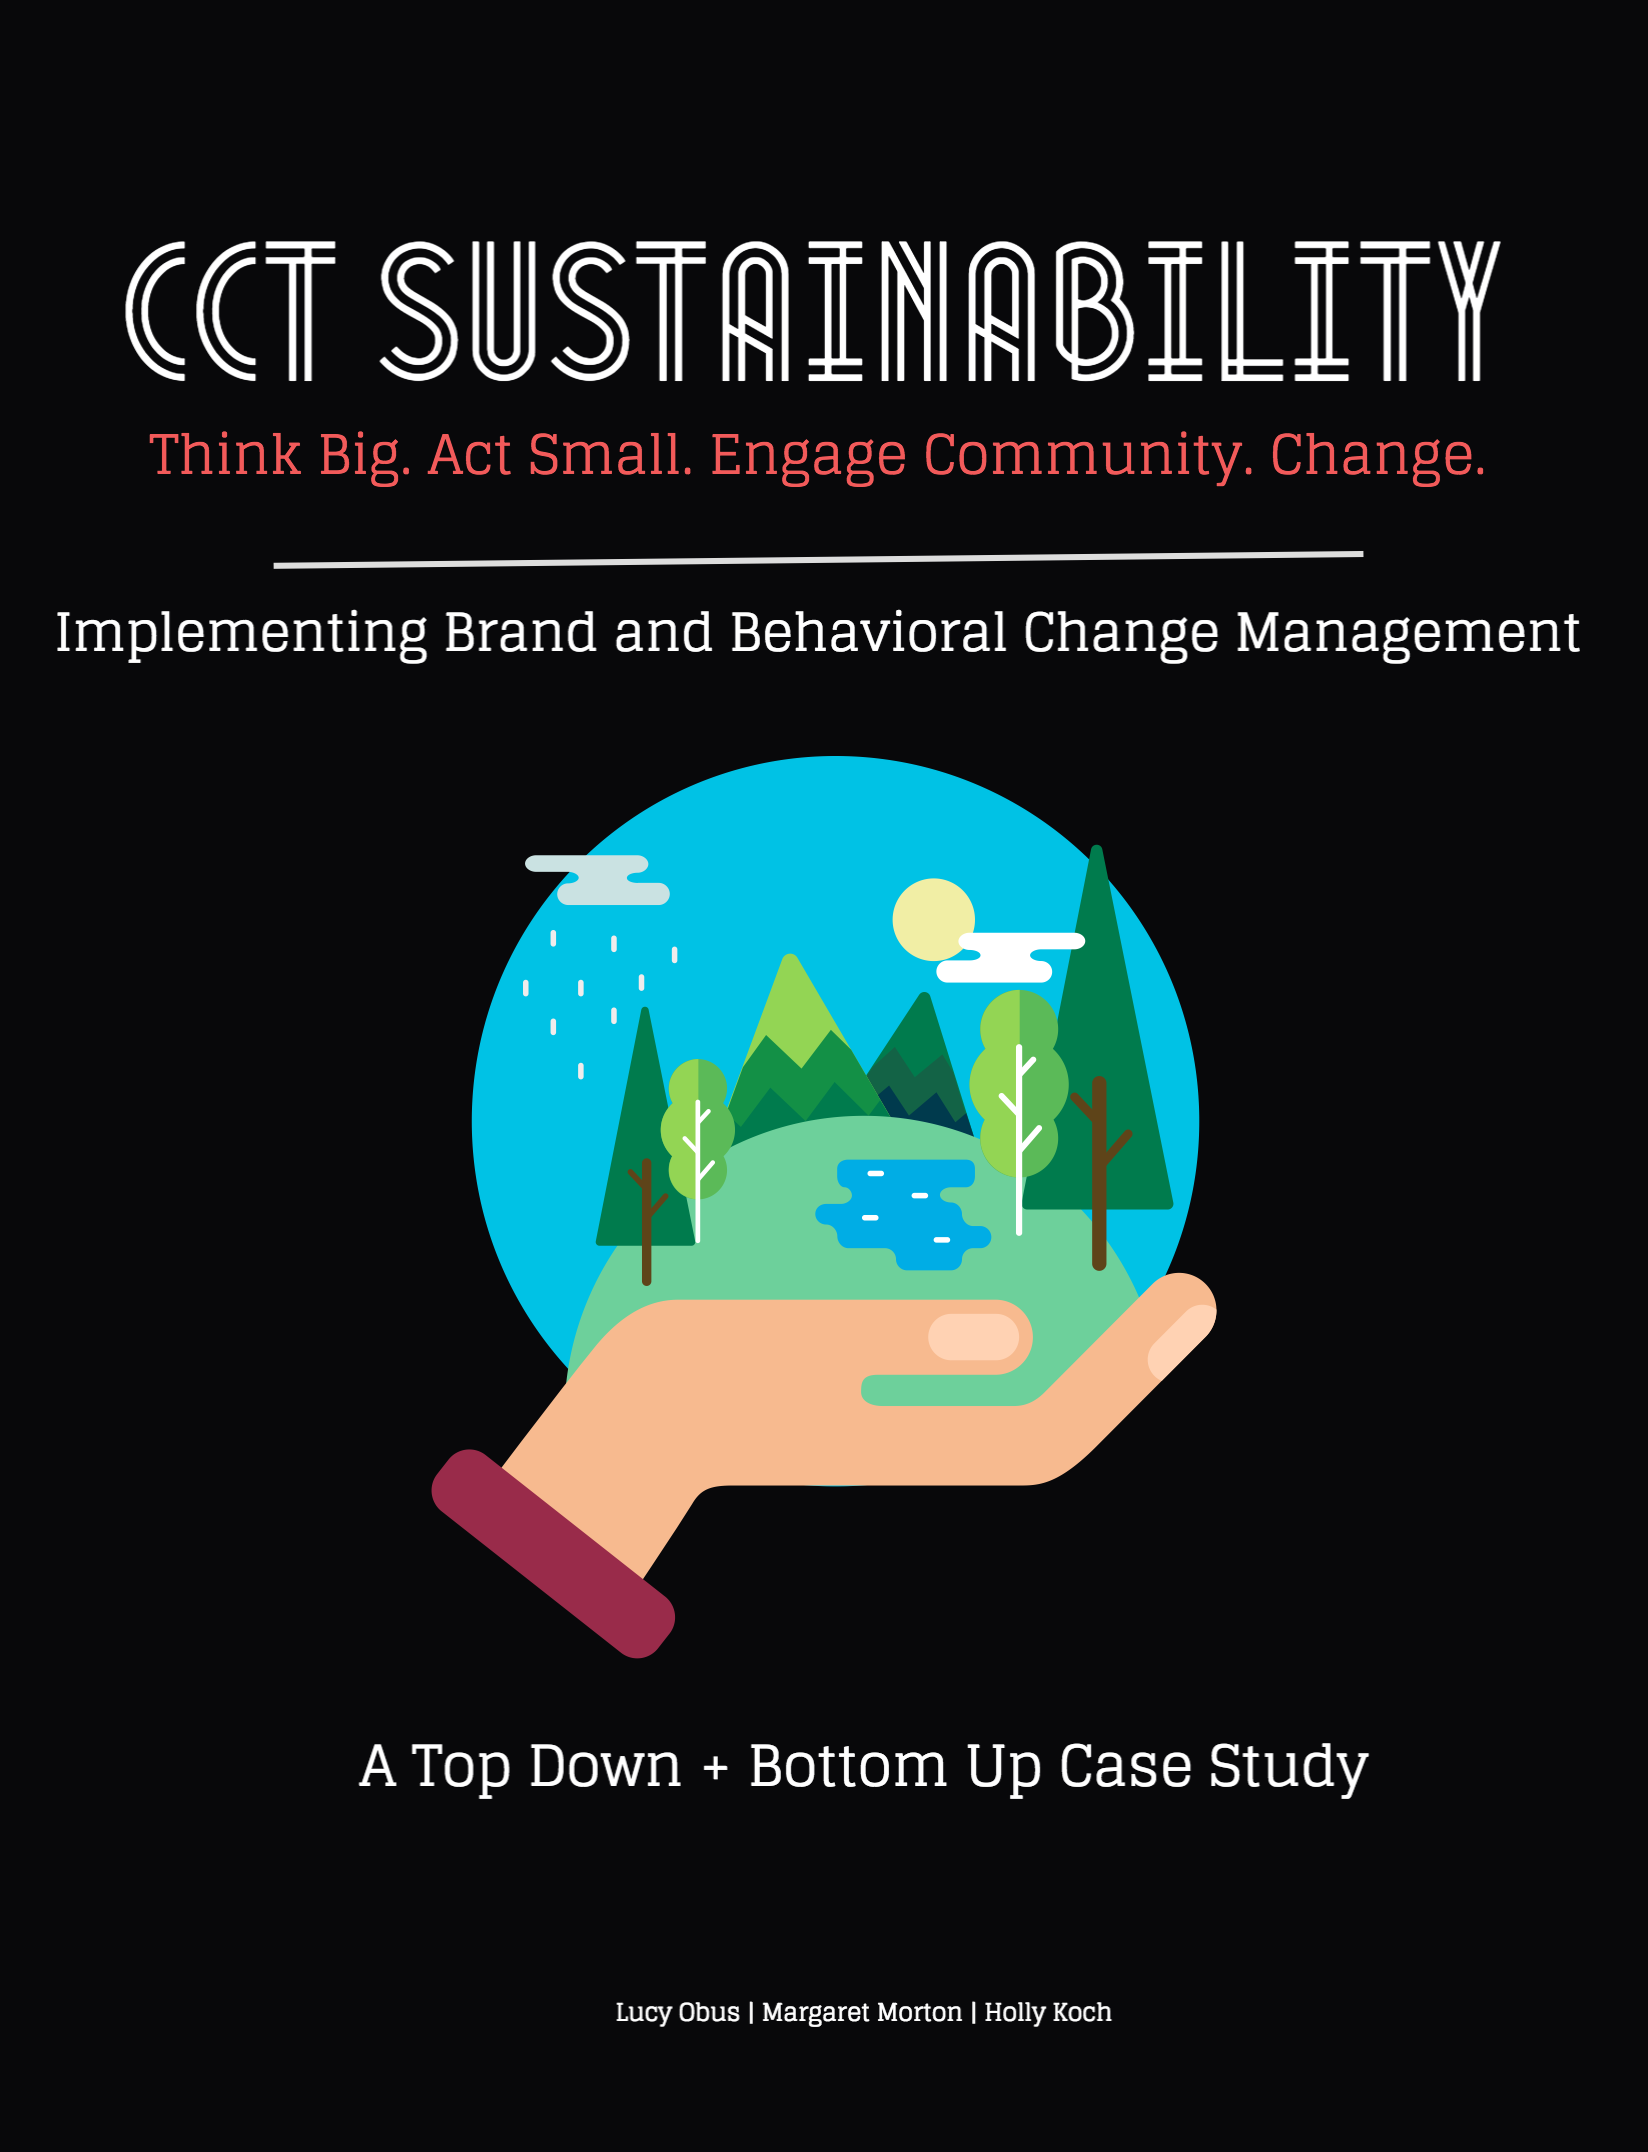 cct sustainability.png